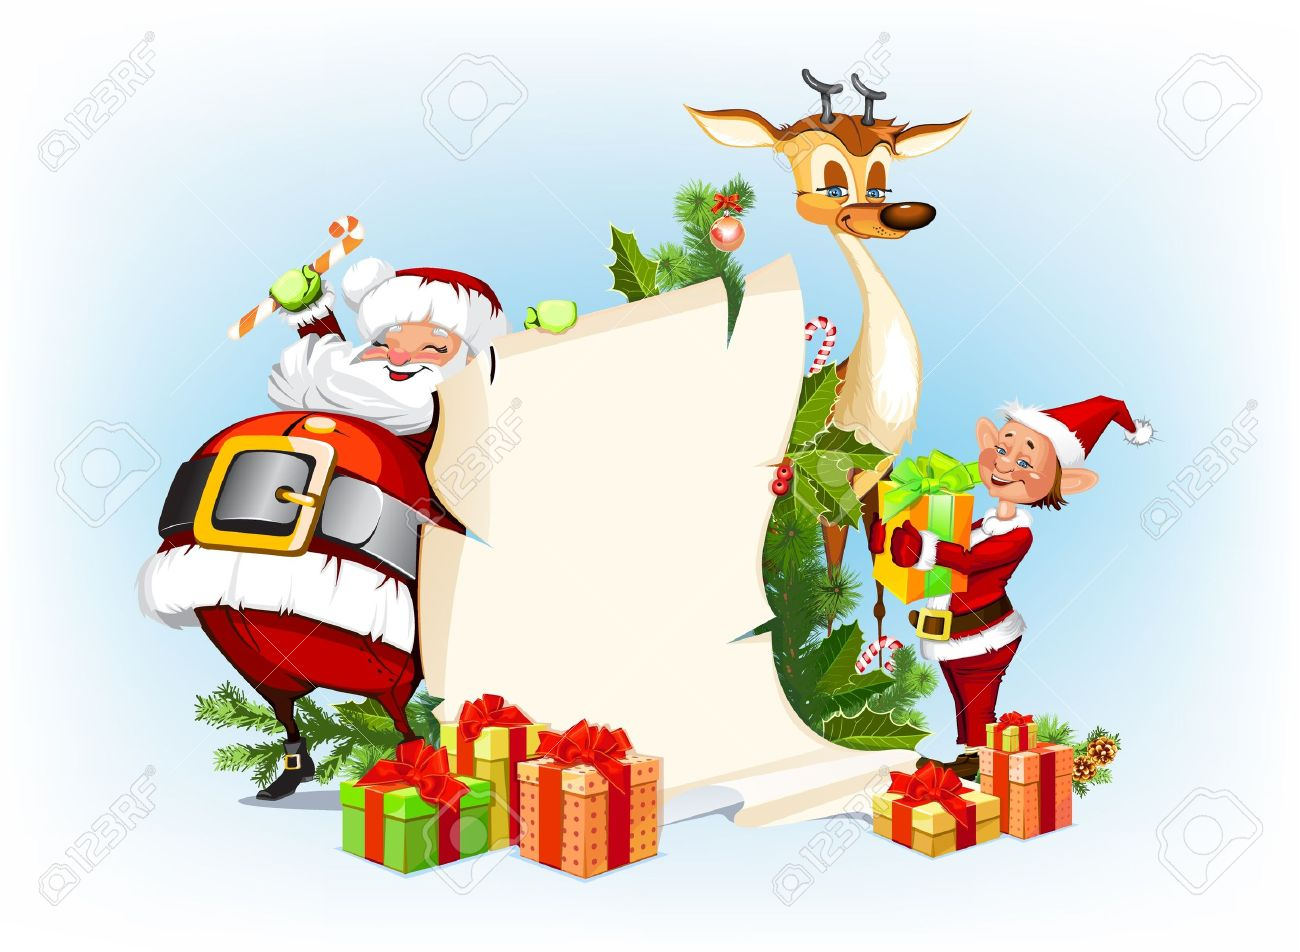 background with reindeer, Santa Claus and his elves Stock Vector - 16386368